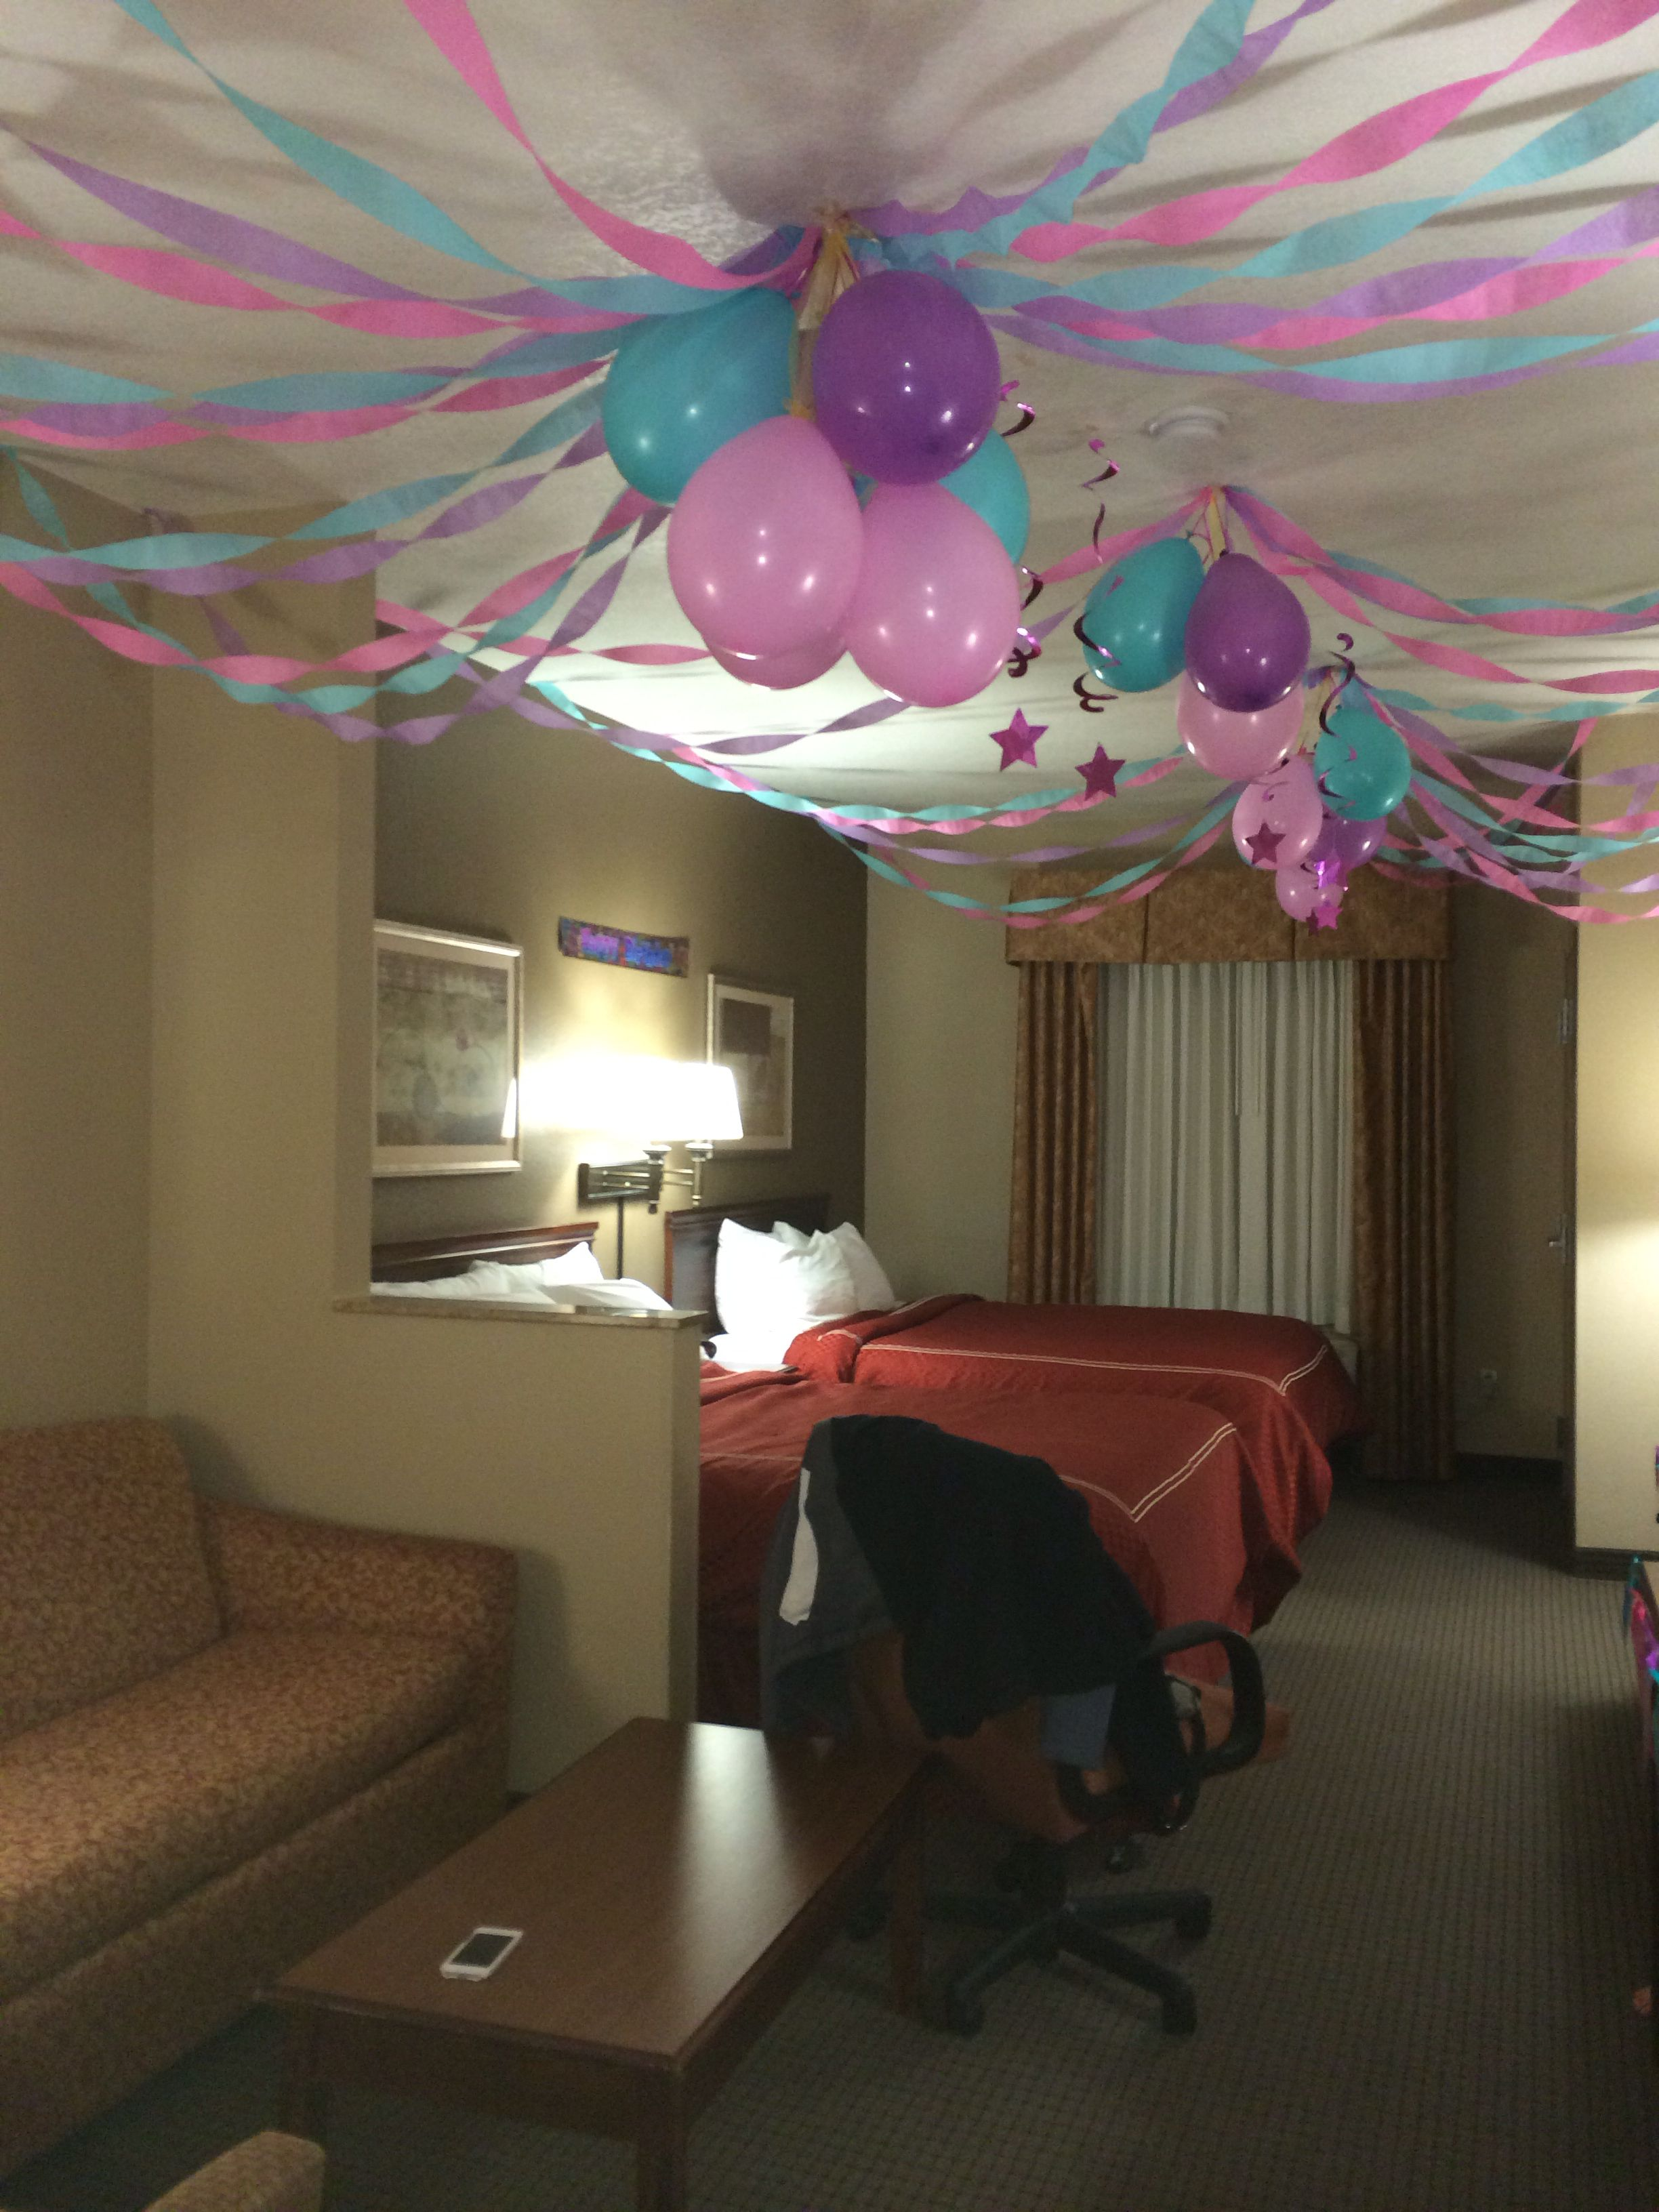 Birthday Party In A Hotel Room Invertedballons Streamers